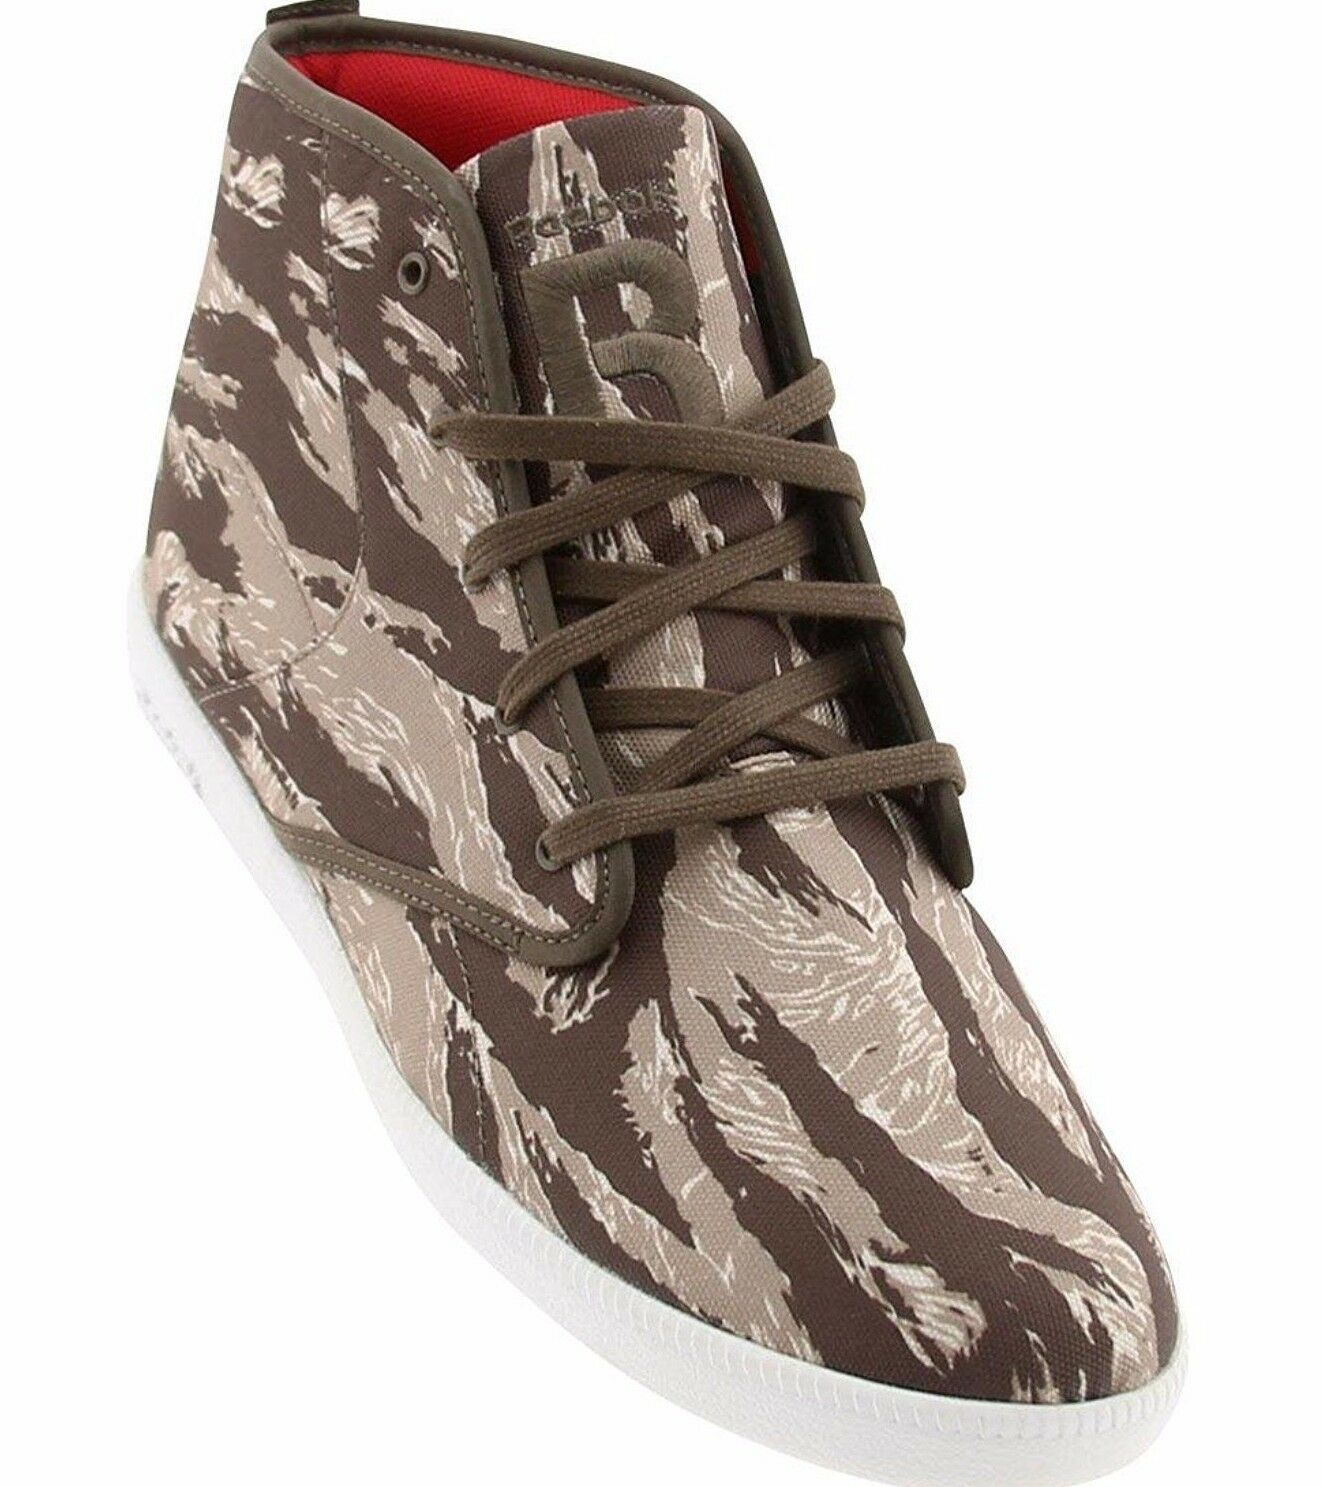 Reebok Men's The Berlín Chukka Marrón Tigre Camuflaje Hi Top Zapatillas 10.5 11